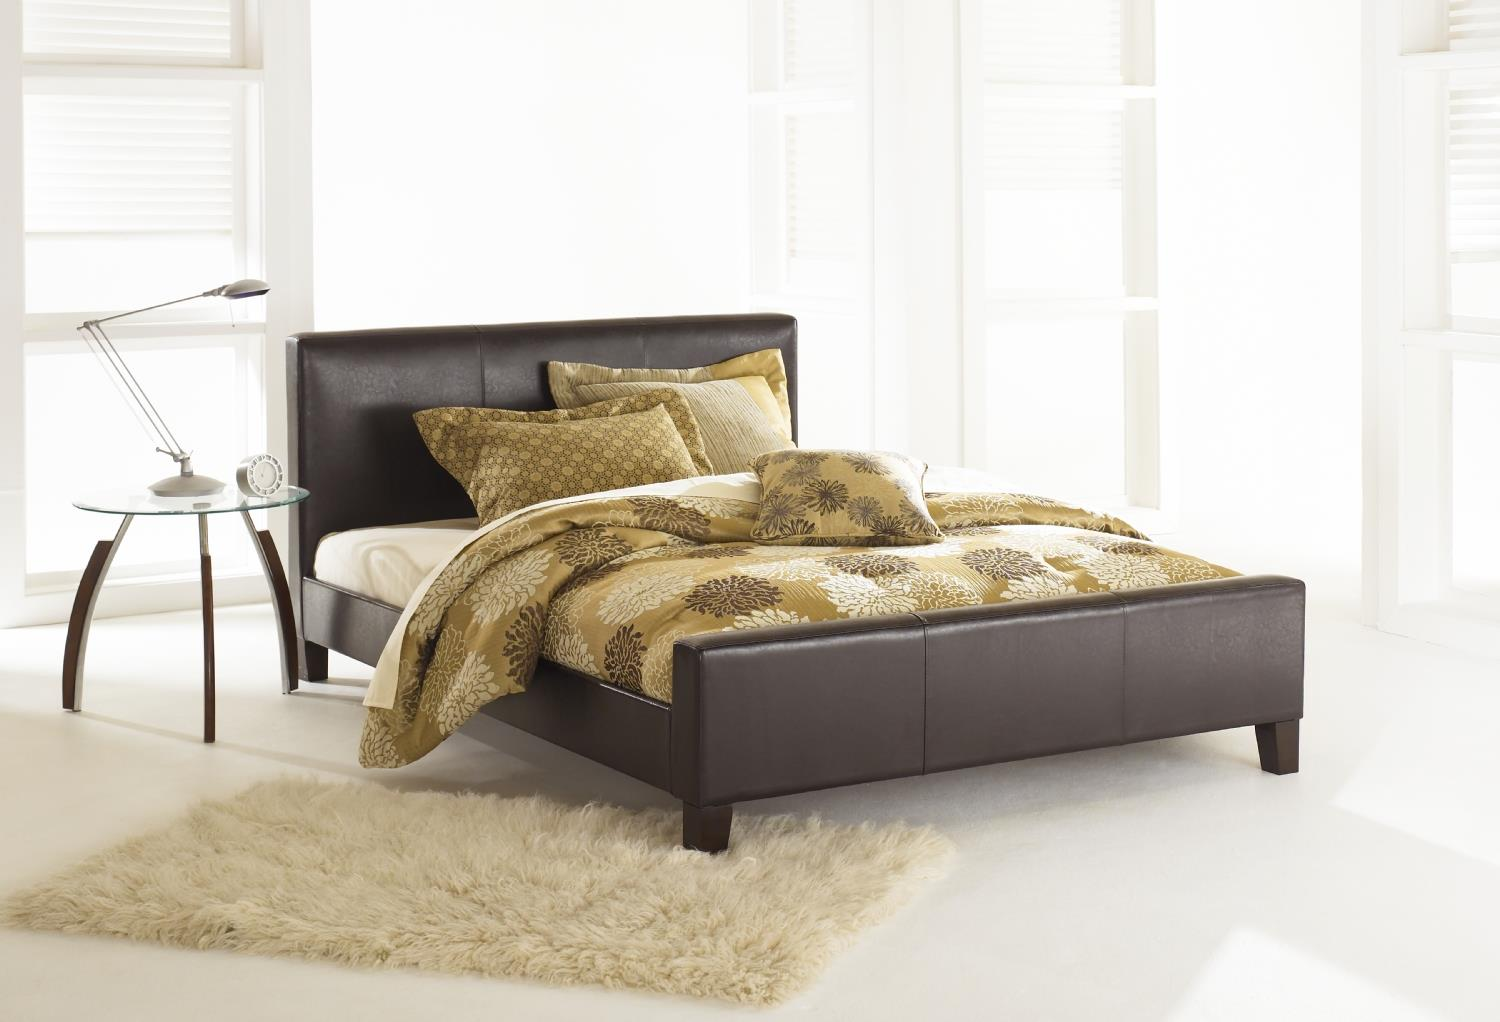 Fashion Bed Group Euro Queen Bed - Item Number: D83227139